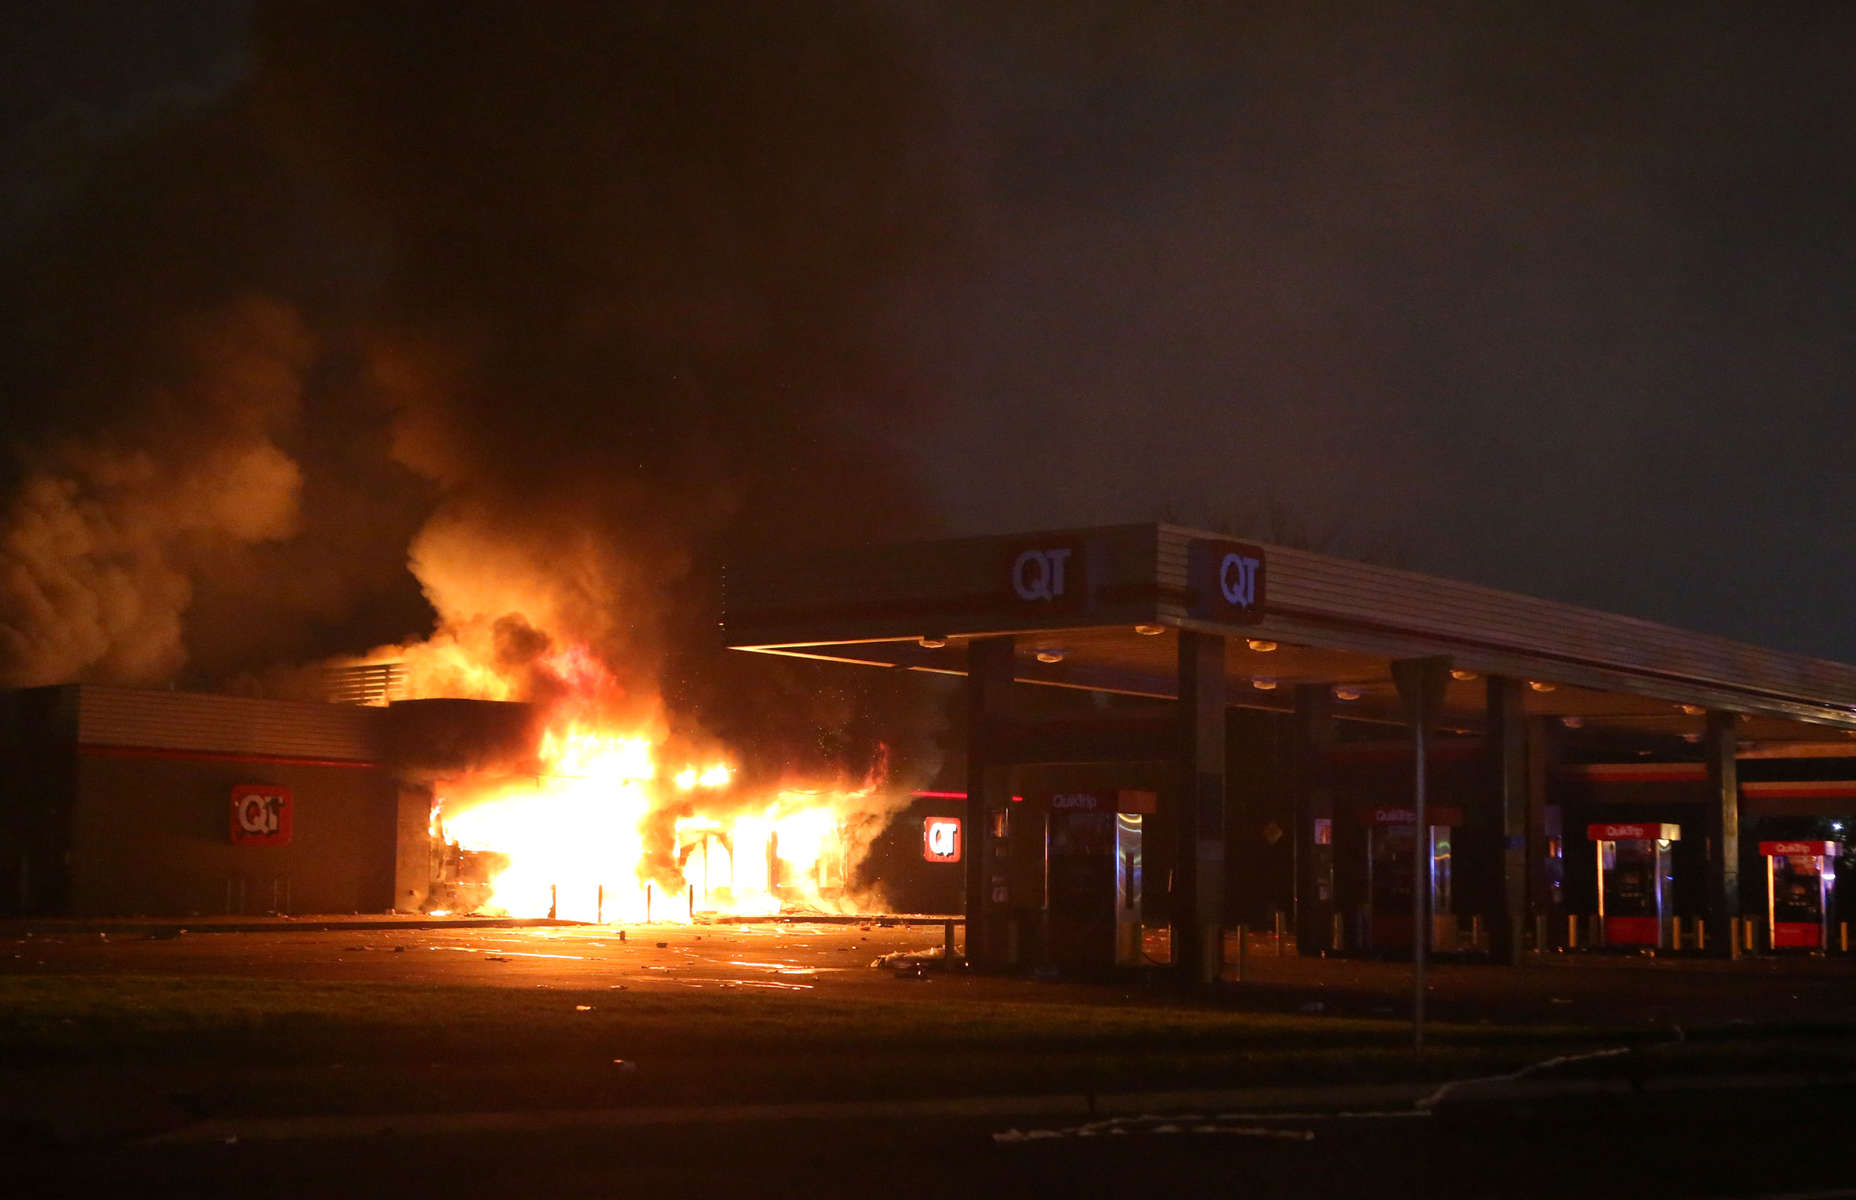 The QuikTrip in 9400 block of W. Florissant Avenue in Ferguson, Mo. burns after being looted by rioters on Sunday, Aug. 10, 2014.  The looting and riots began after a candlelight vigil for Michael Brown when confrontions between police and protesters spiraled out of control.